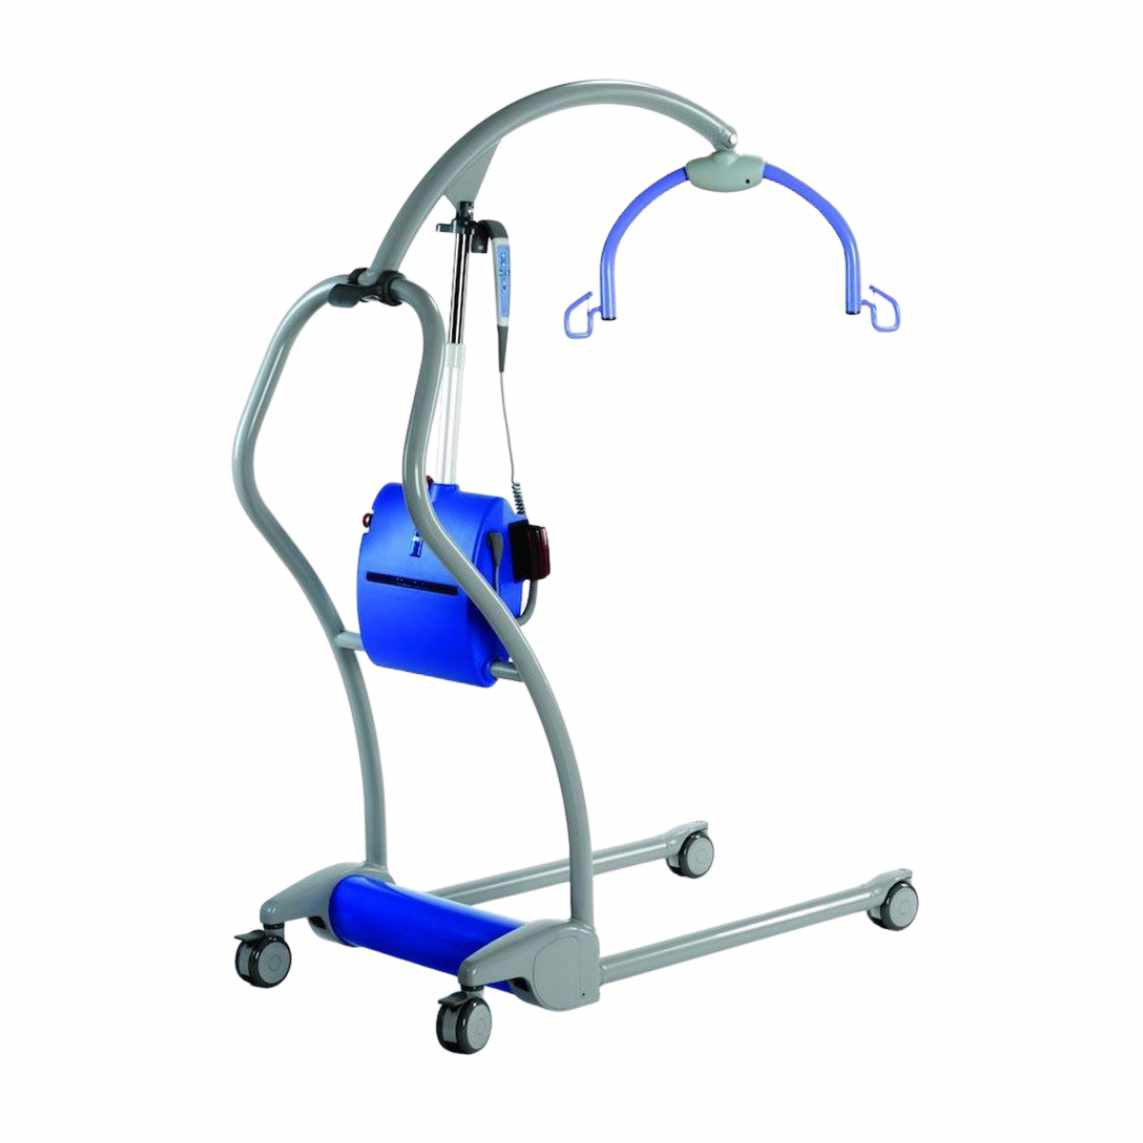 Arjo Maxi Twin power patient lift